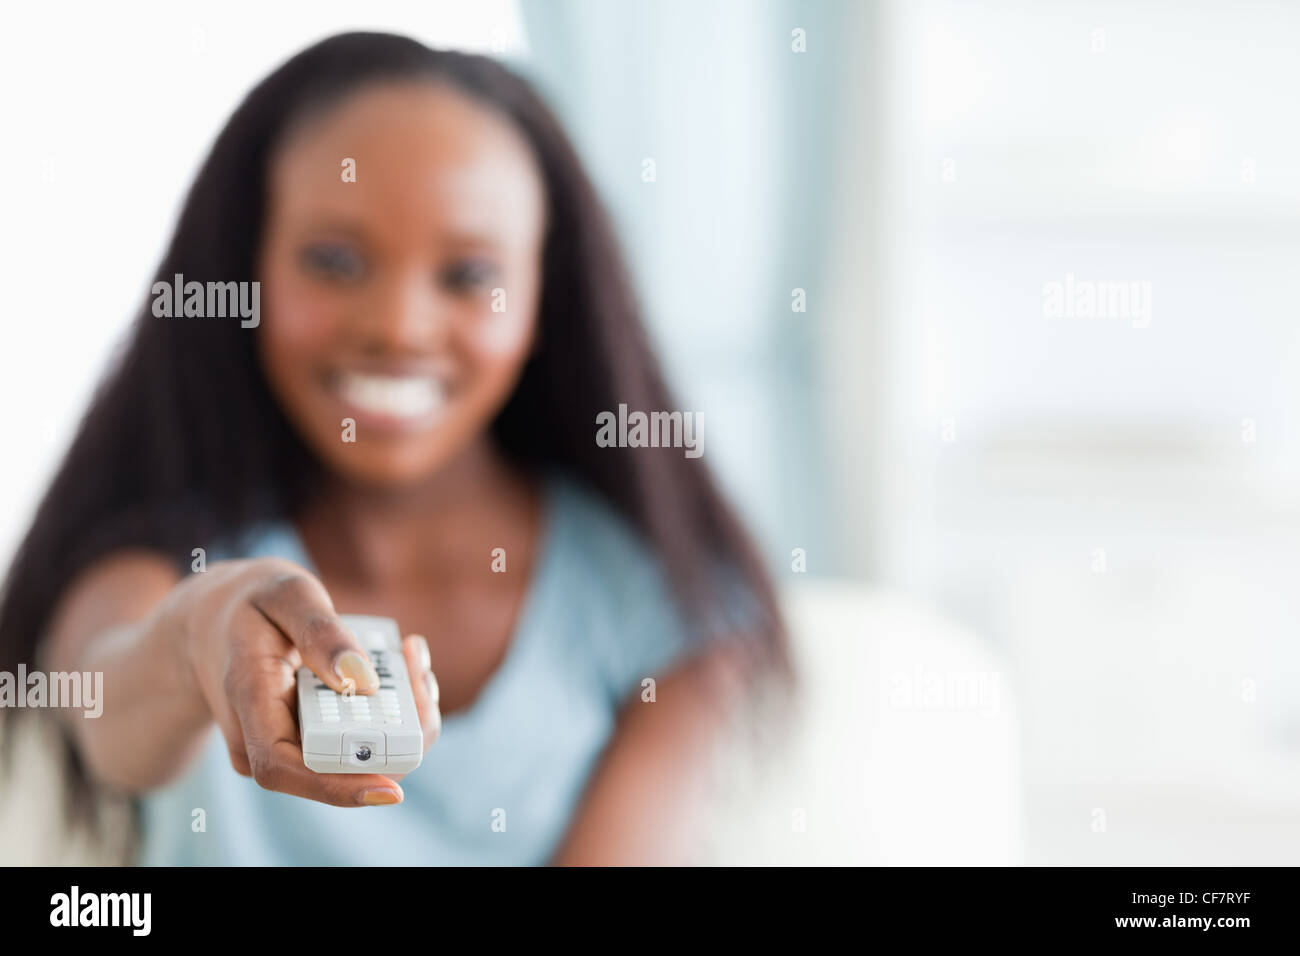 Close up of remote control being used by woman - Stock Image